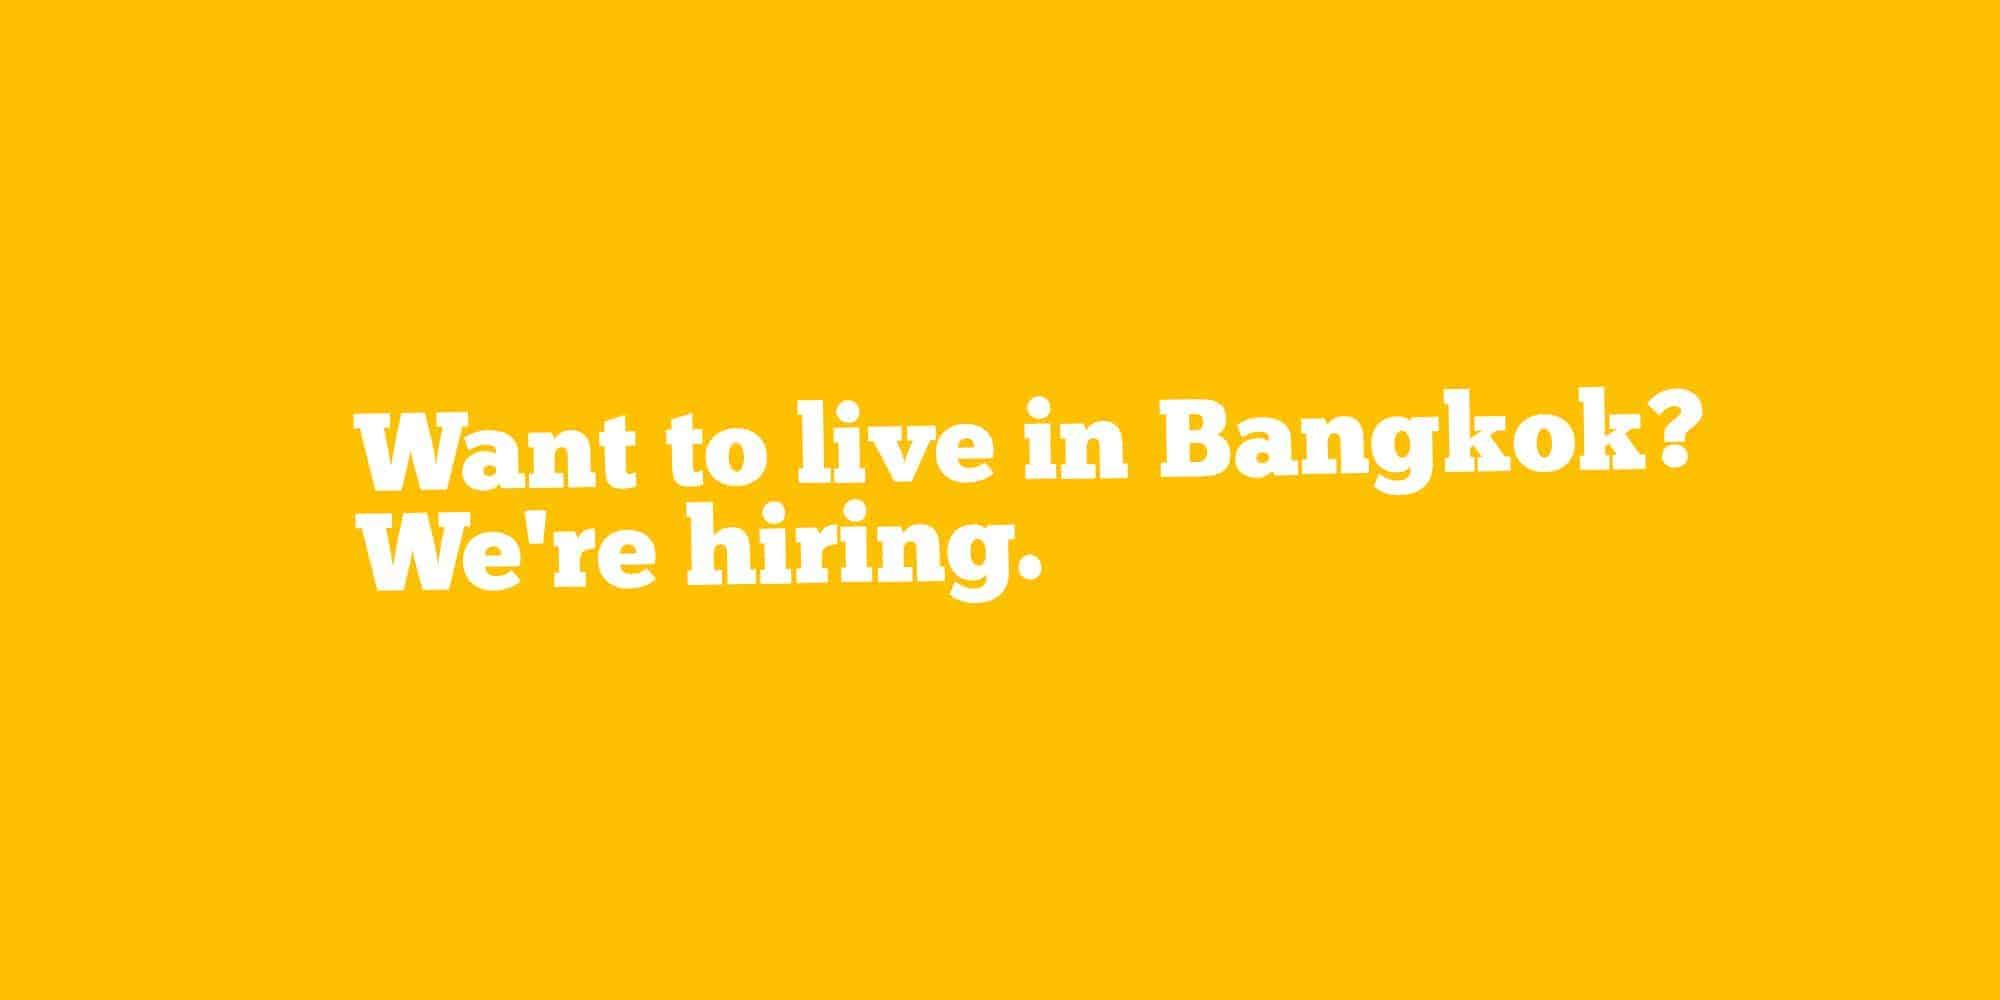 want-to-live-in-bangkok-were-hiring